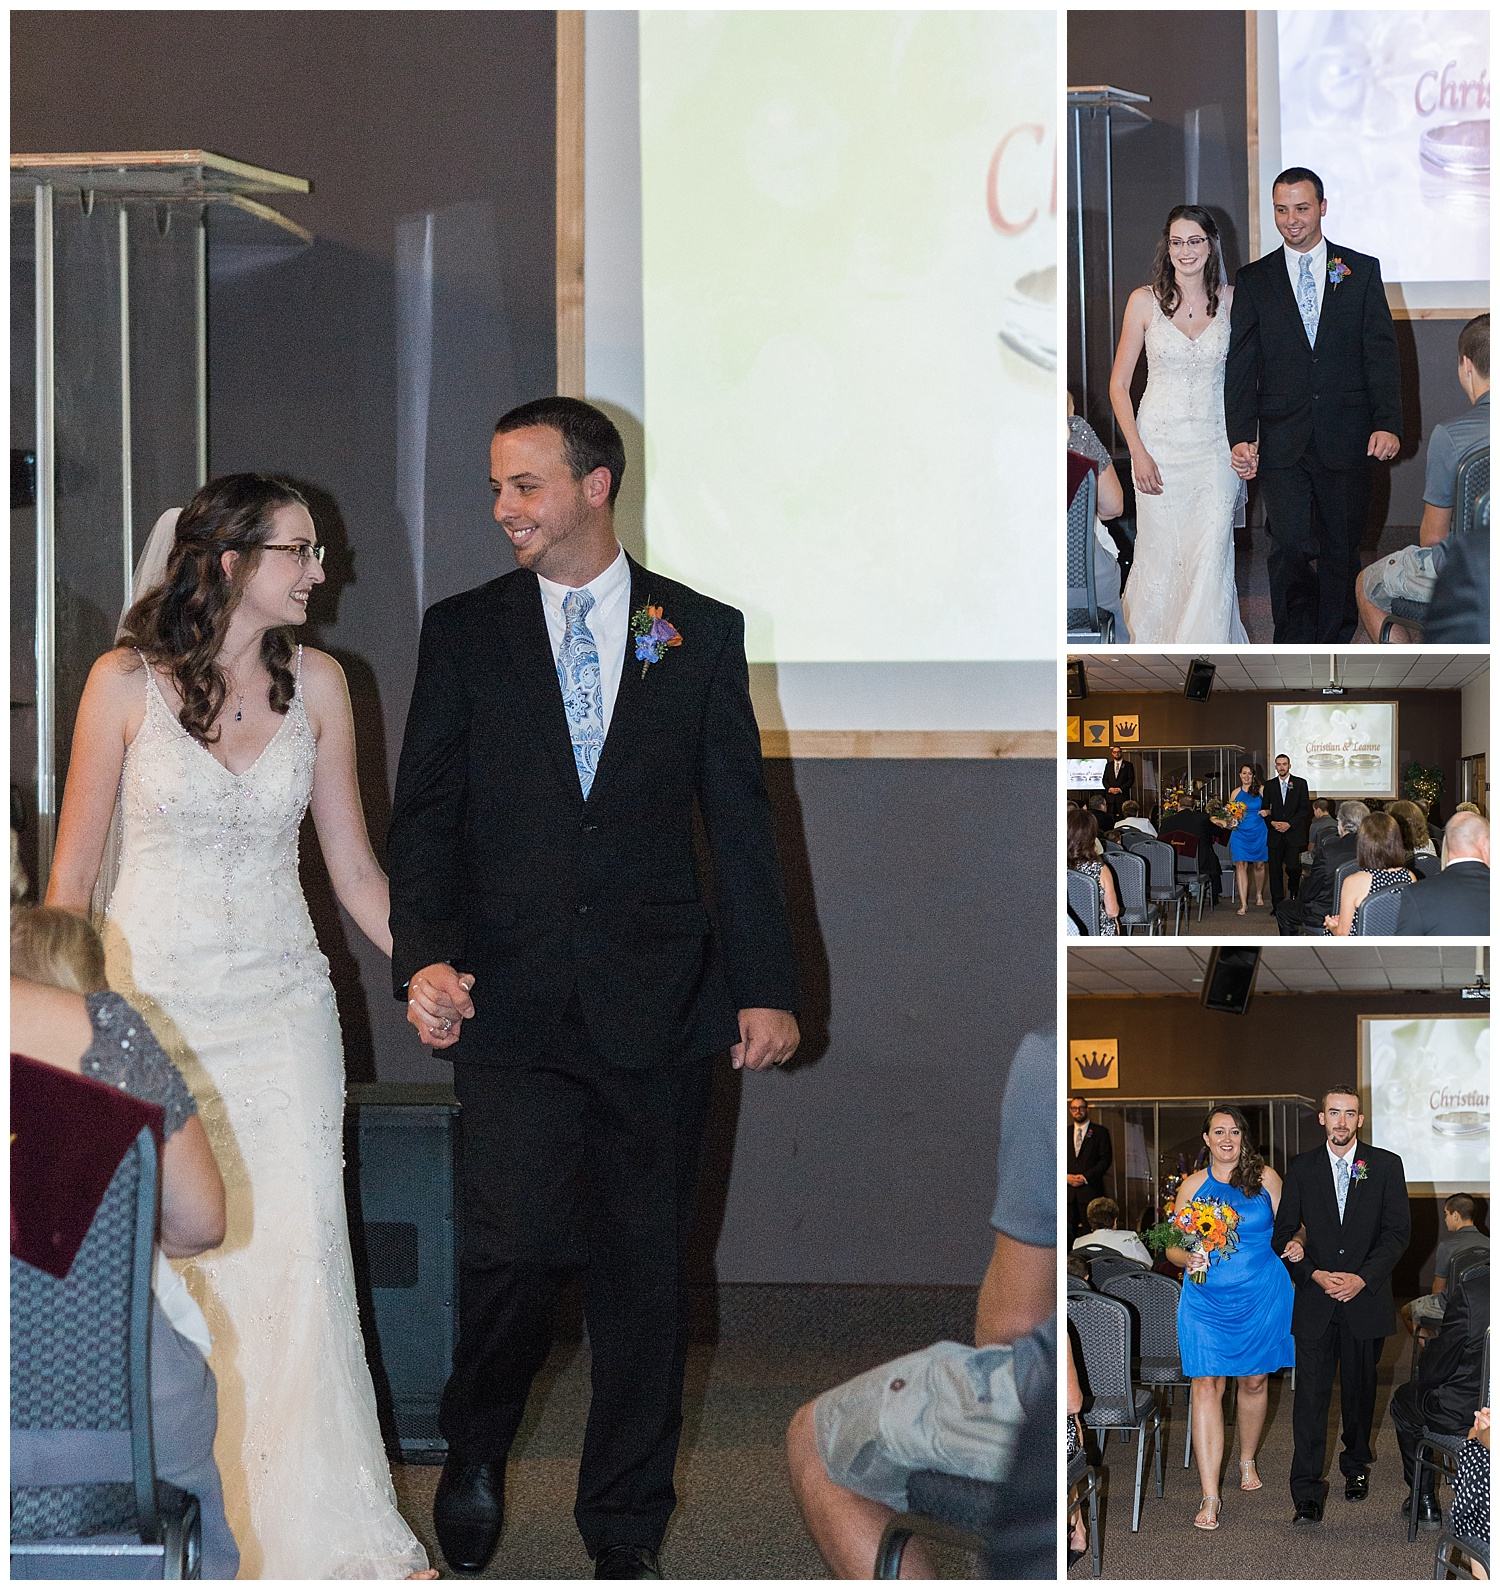 Chris and Leanne Hindle - Nugget Hill - Wayland NY - Lass and Beau-350_Buffalo wedding photography.jpg